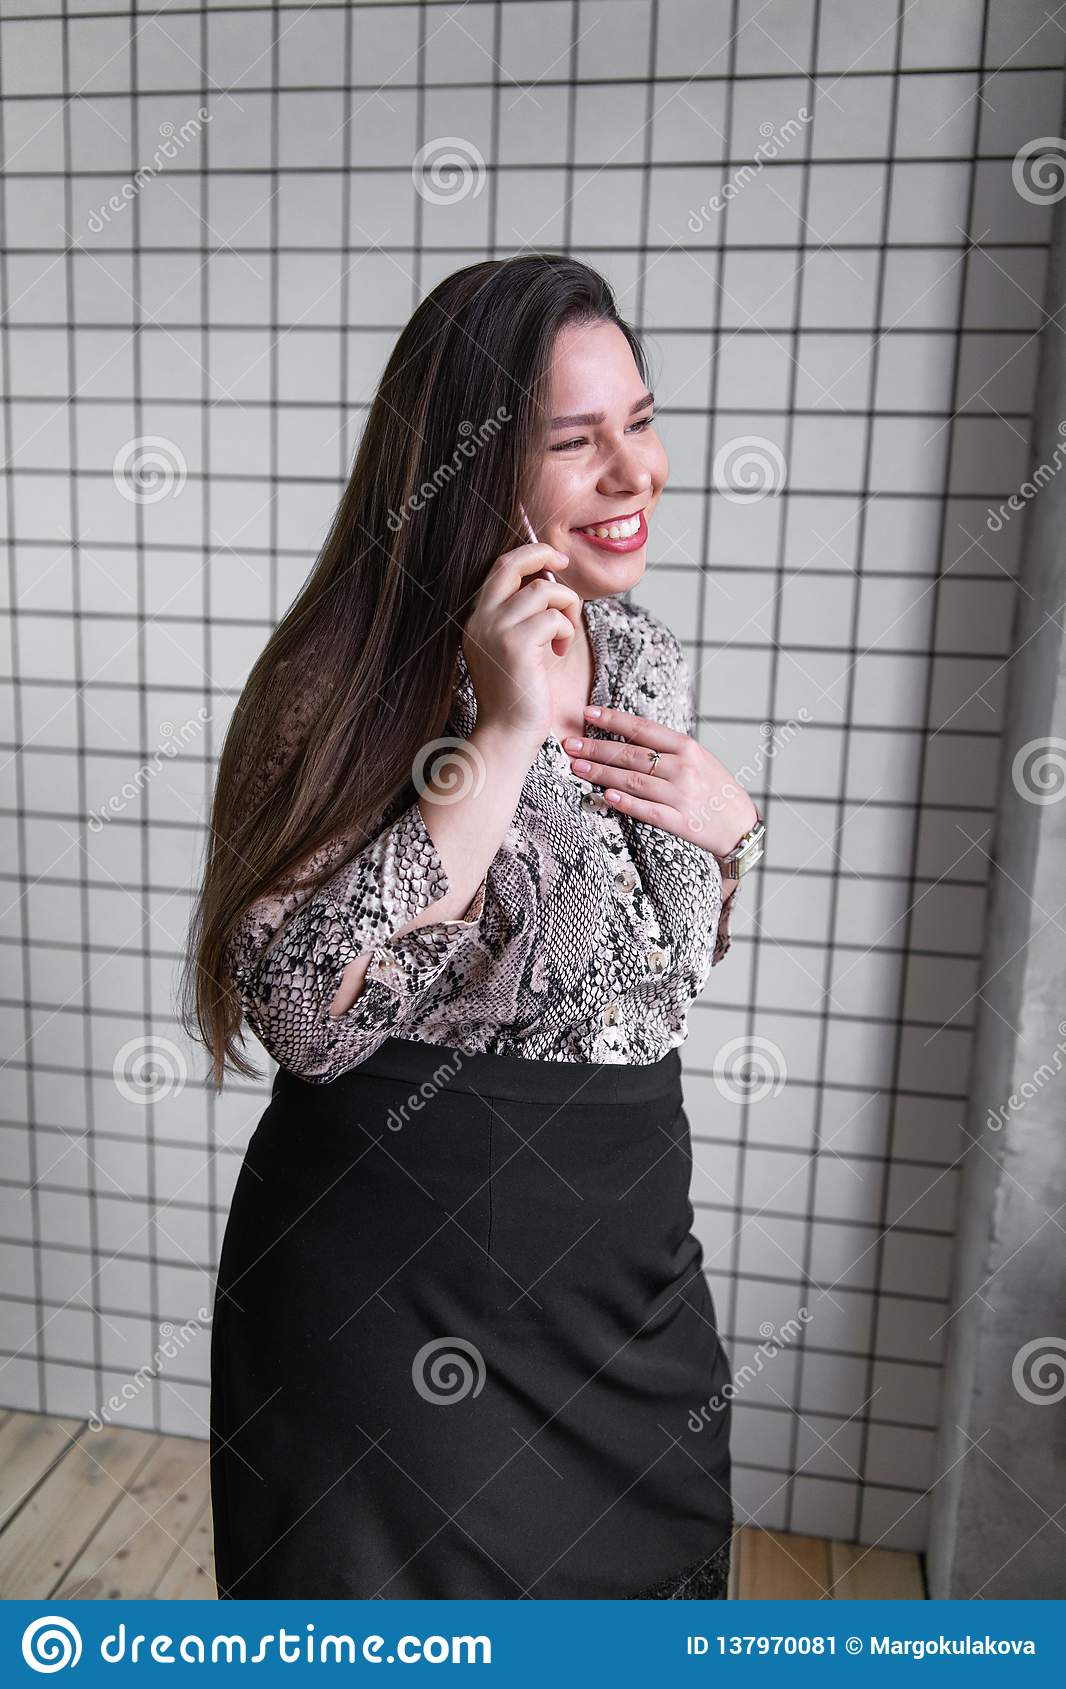 Close up Young Office Woman Talking to Someone on her Mobile Phone While Looking Into the Distance with Happy Facial